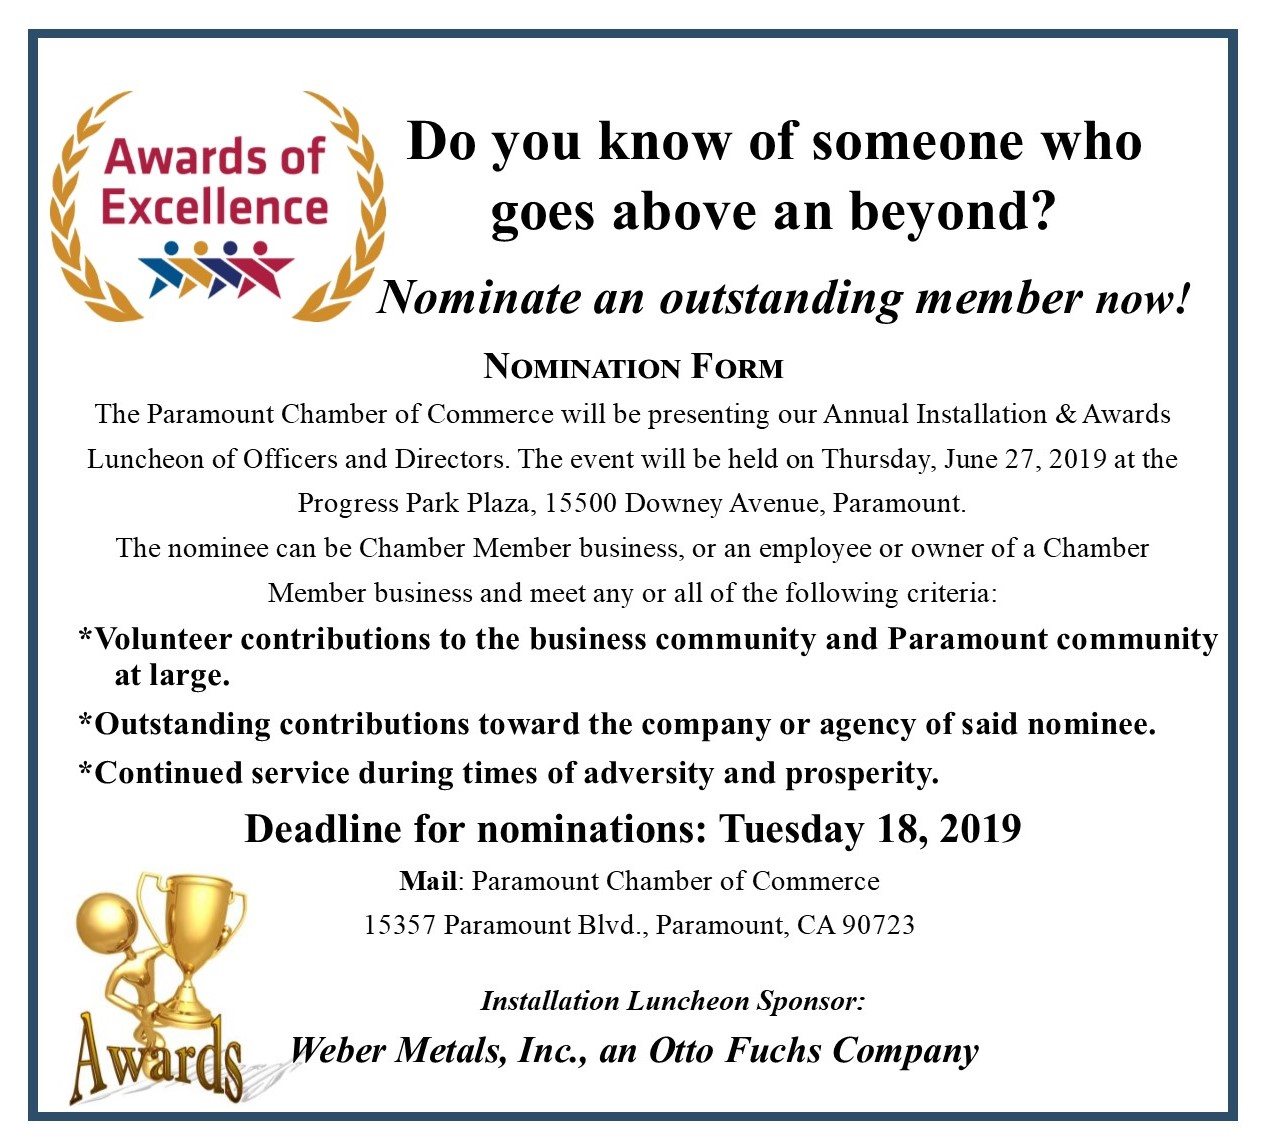 AWARD OF EXCELLENCE NOMINATIONFORM 2019